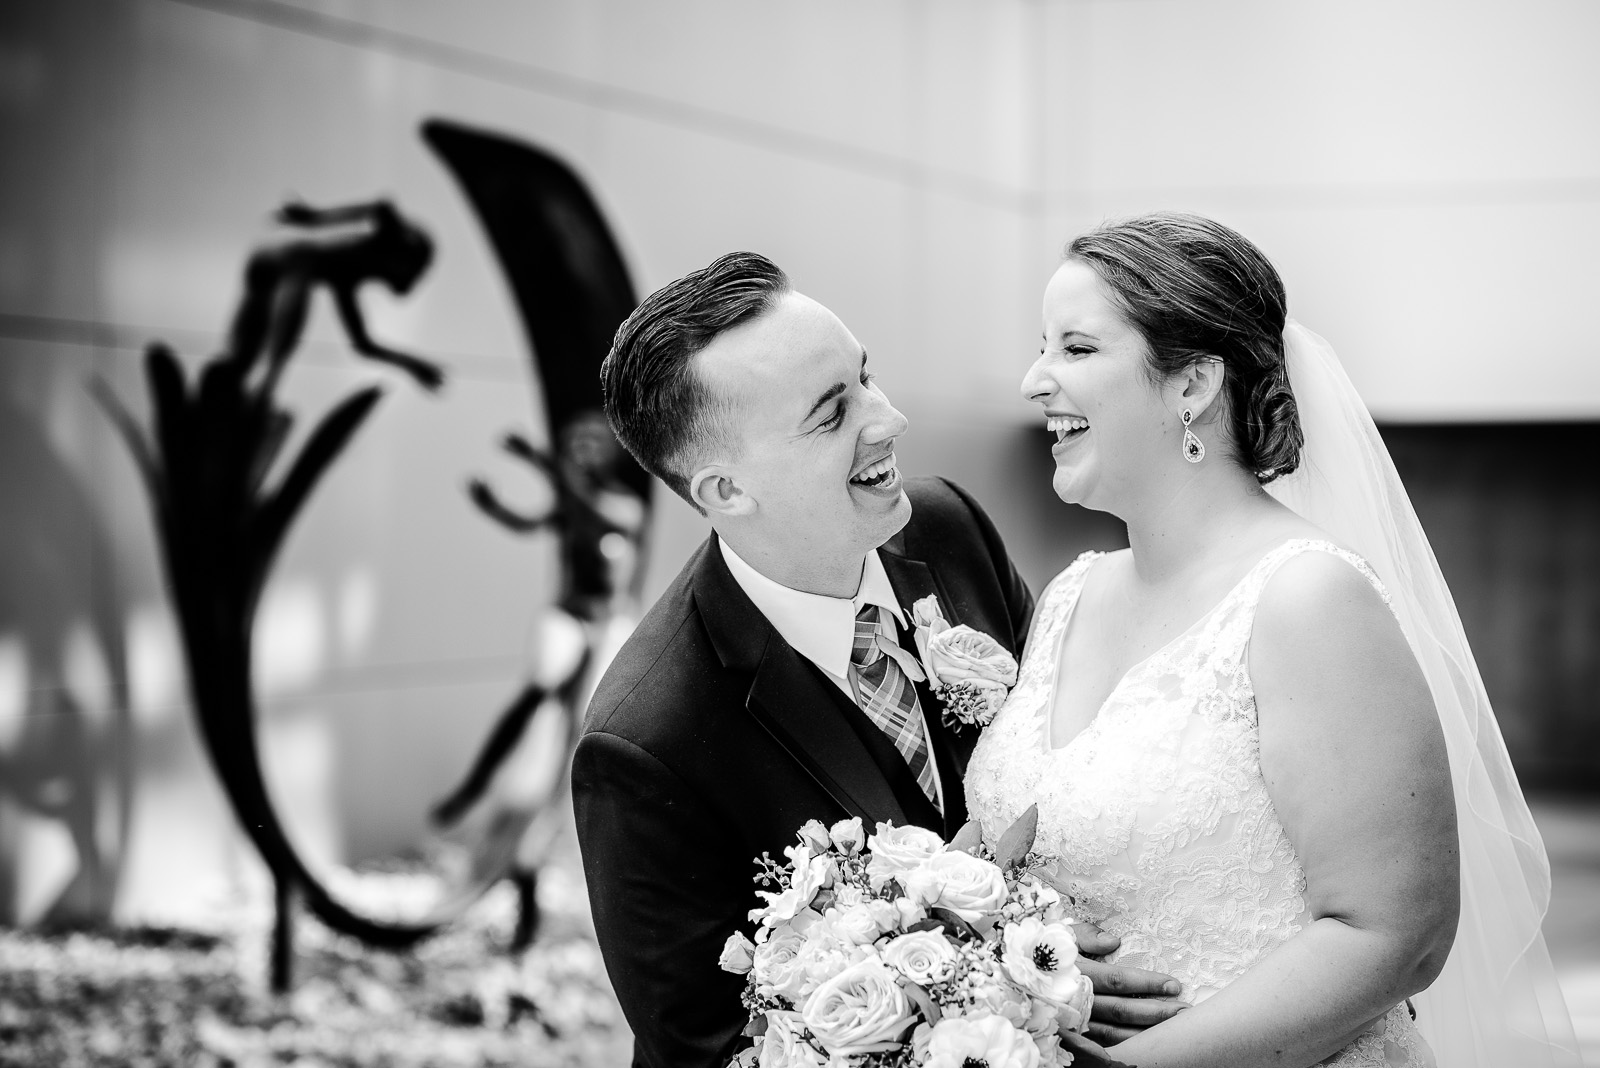 Eric_and_Christy_Photography_Blog_Wedding_Paige_Eric-51